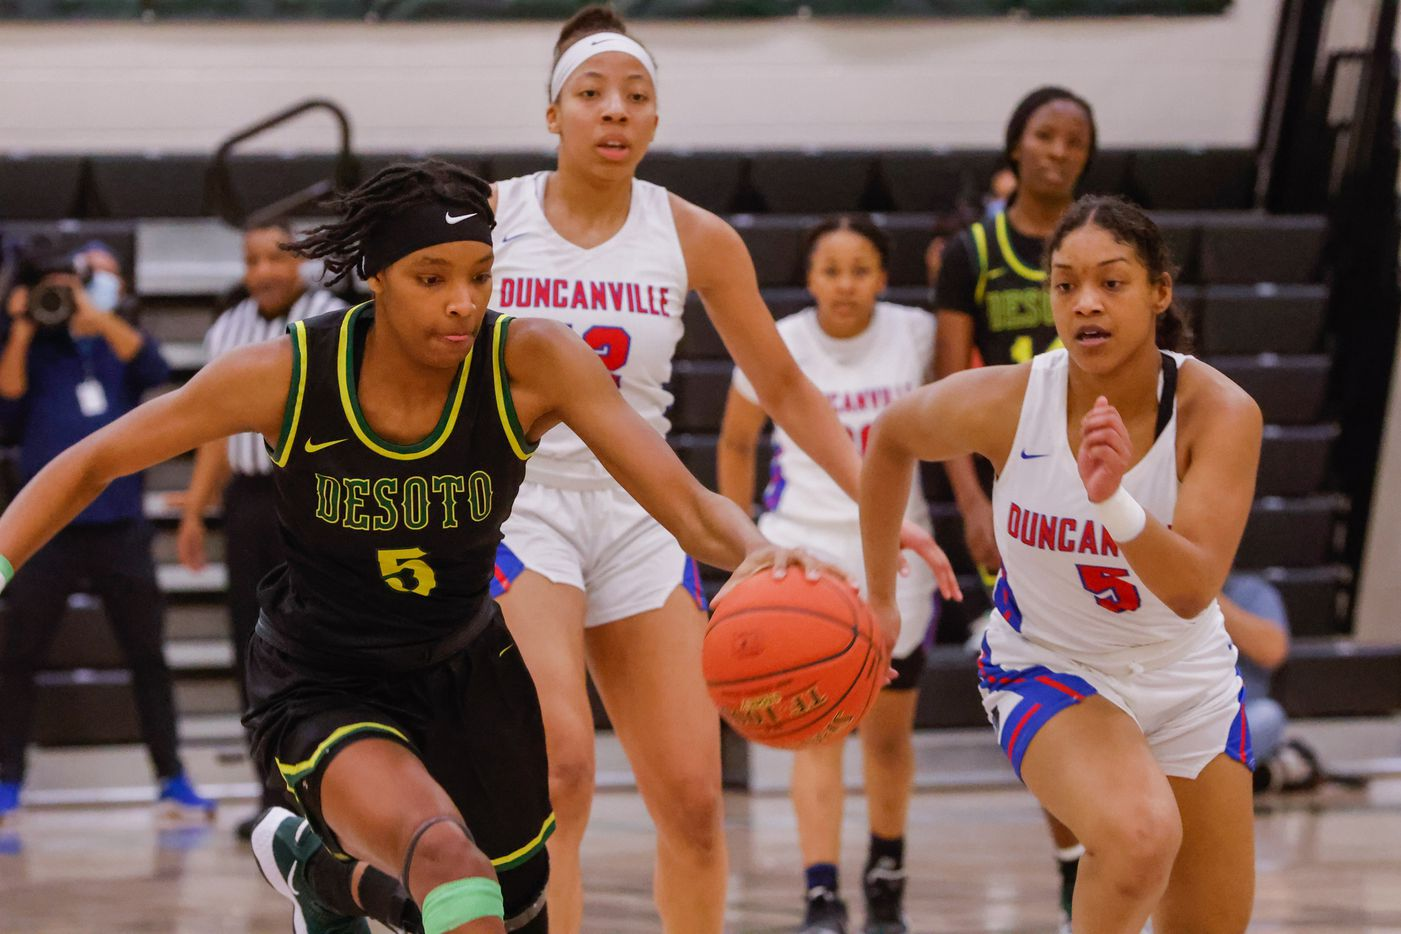 DeSoto's Sa'Myah Smith (5) drives past Duncanville's Kiyara Howard-Garza (5) during the first half of a UIL girls basketball Class 6A Region II in Waxahachie on Tuesday, March 2, 2021. (Juan Figueroa/ The Dallas Morning News)